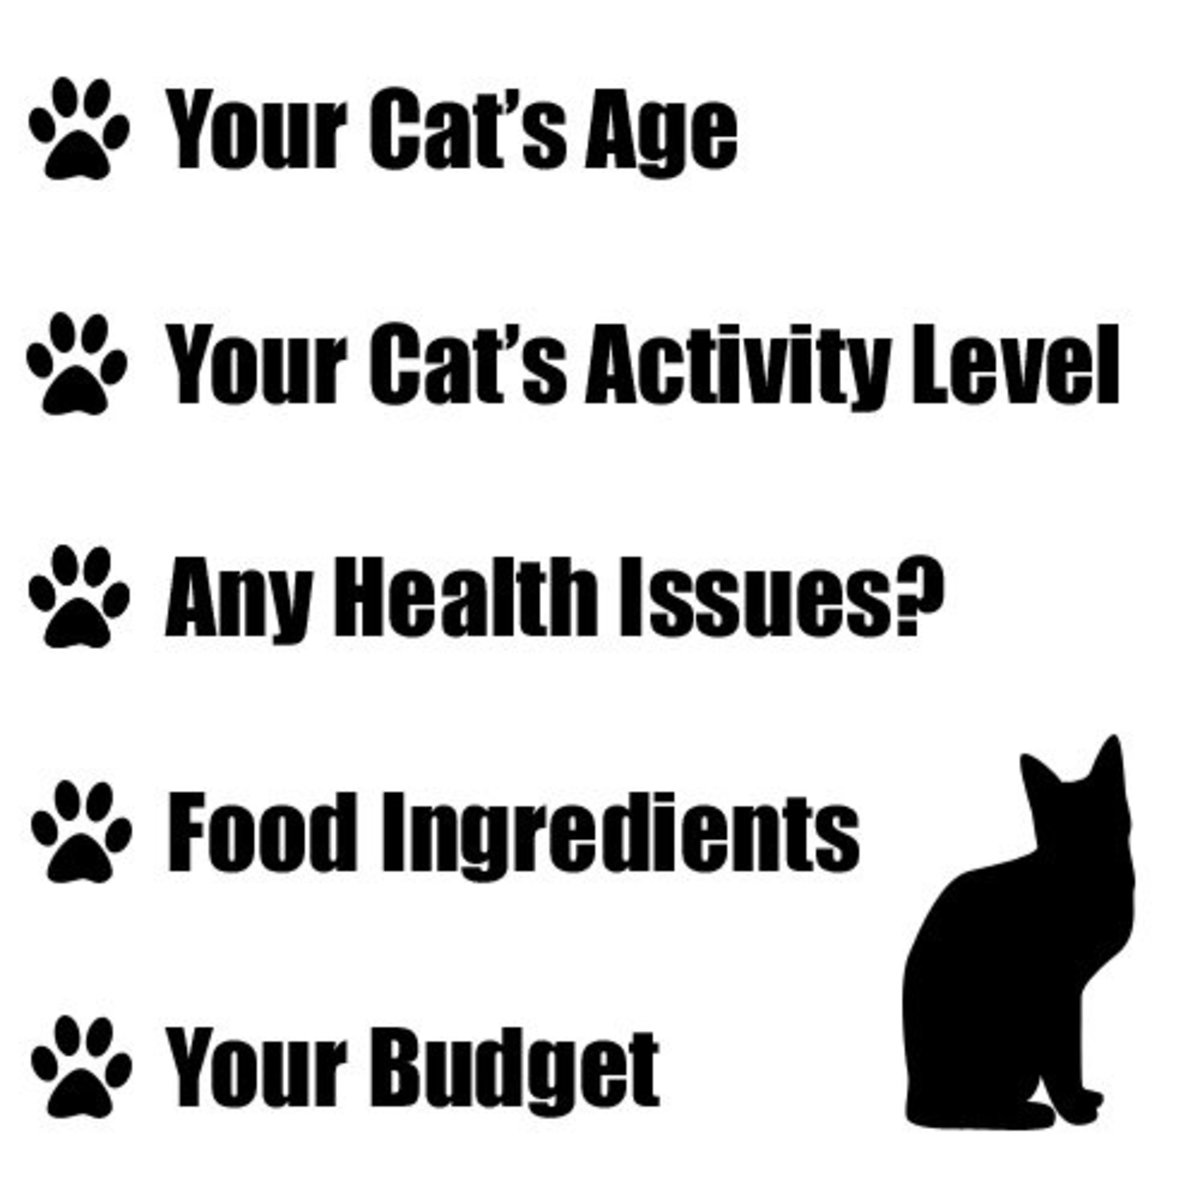 Five important factors to consider when choosing the best cat food for your cat.